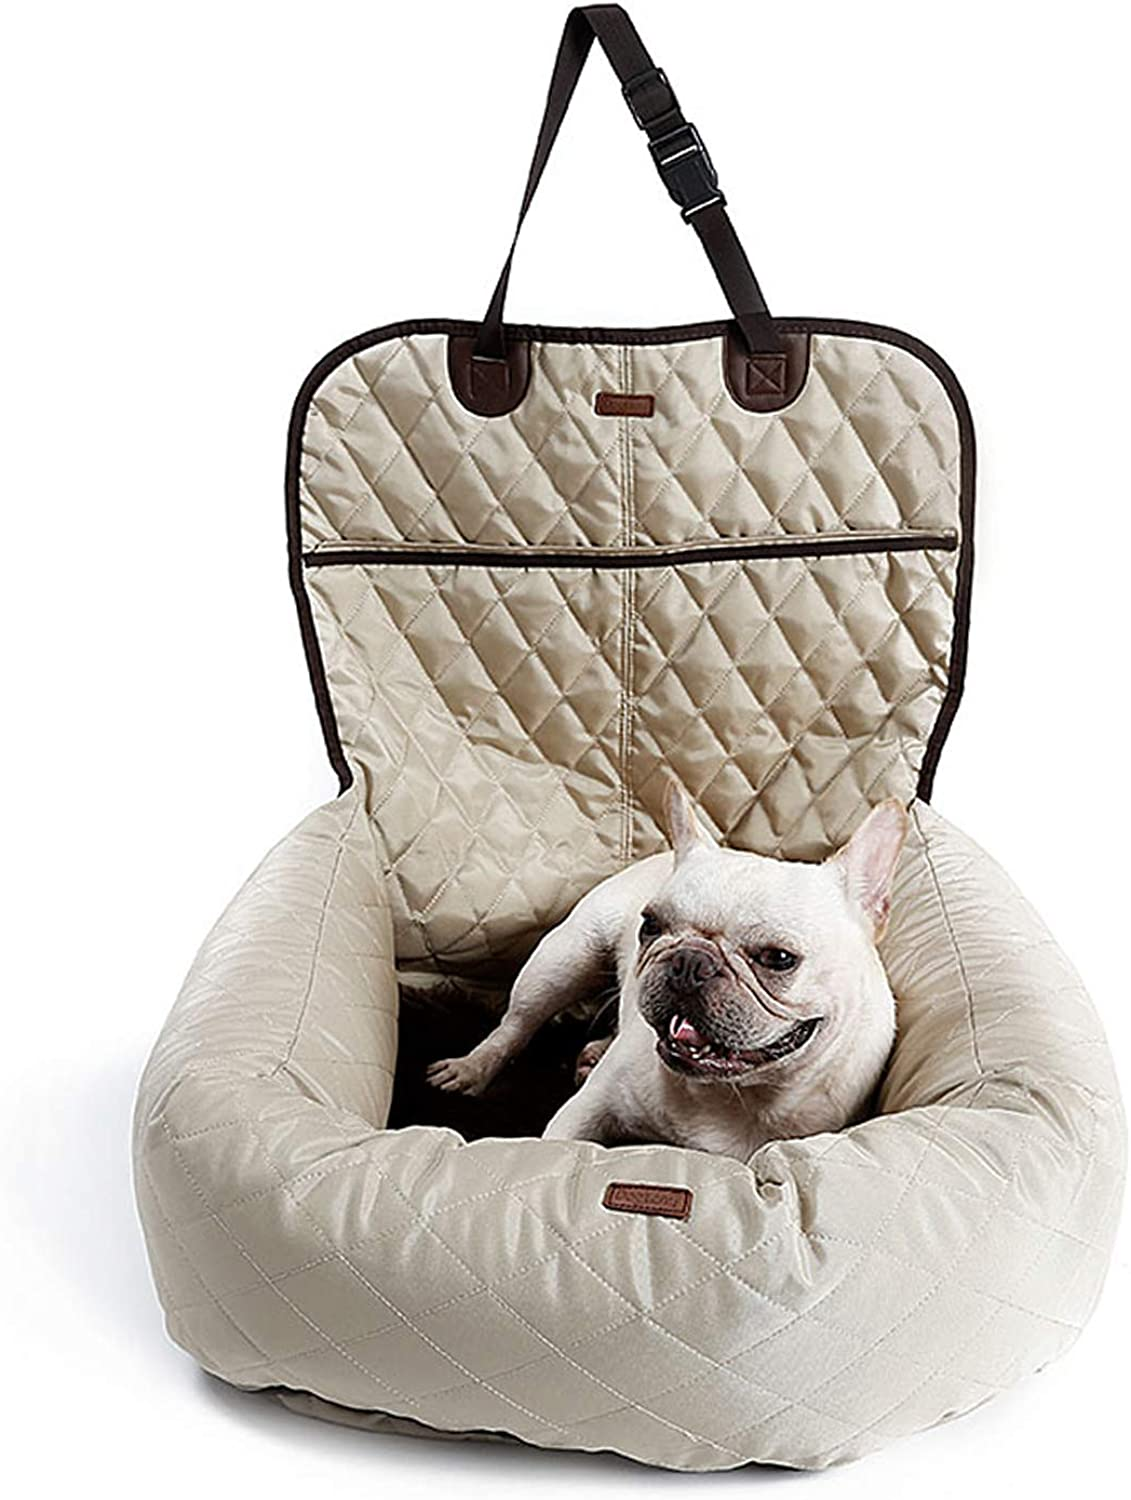 Portable Pet Car Cushion Booster Seat Bed Dog Travel Sofa Carrier with Seat Belt Soft Warm for Small Medium Dogs Cats (Beige)